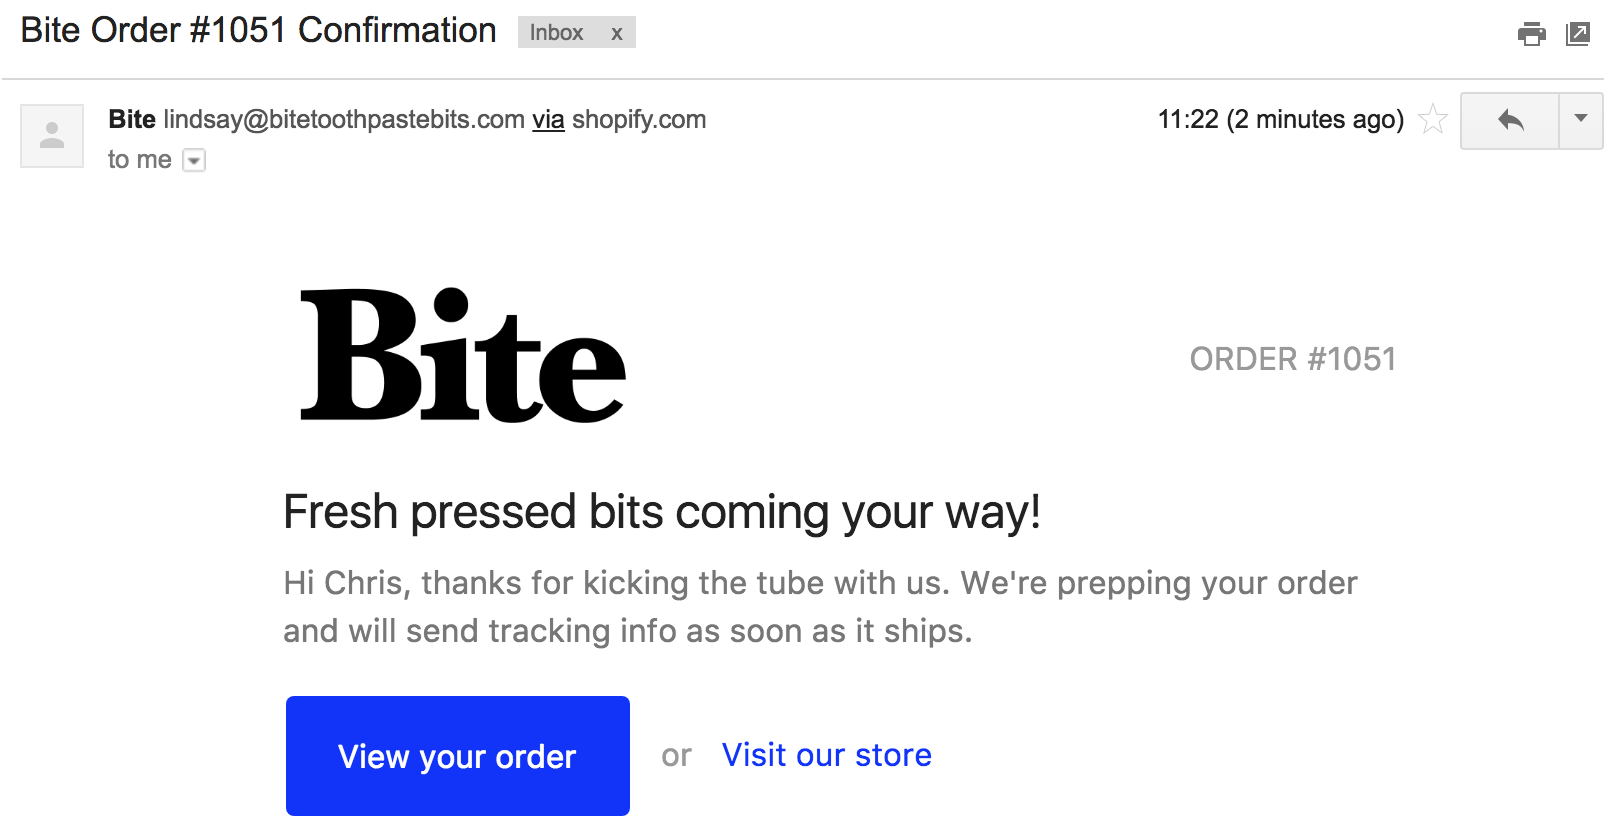 Screenshot showing an email sent by Bite